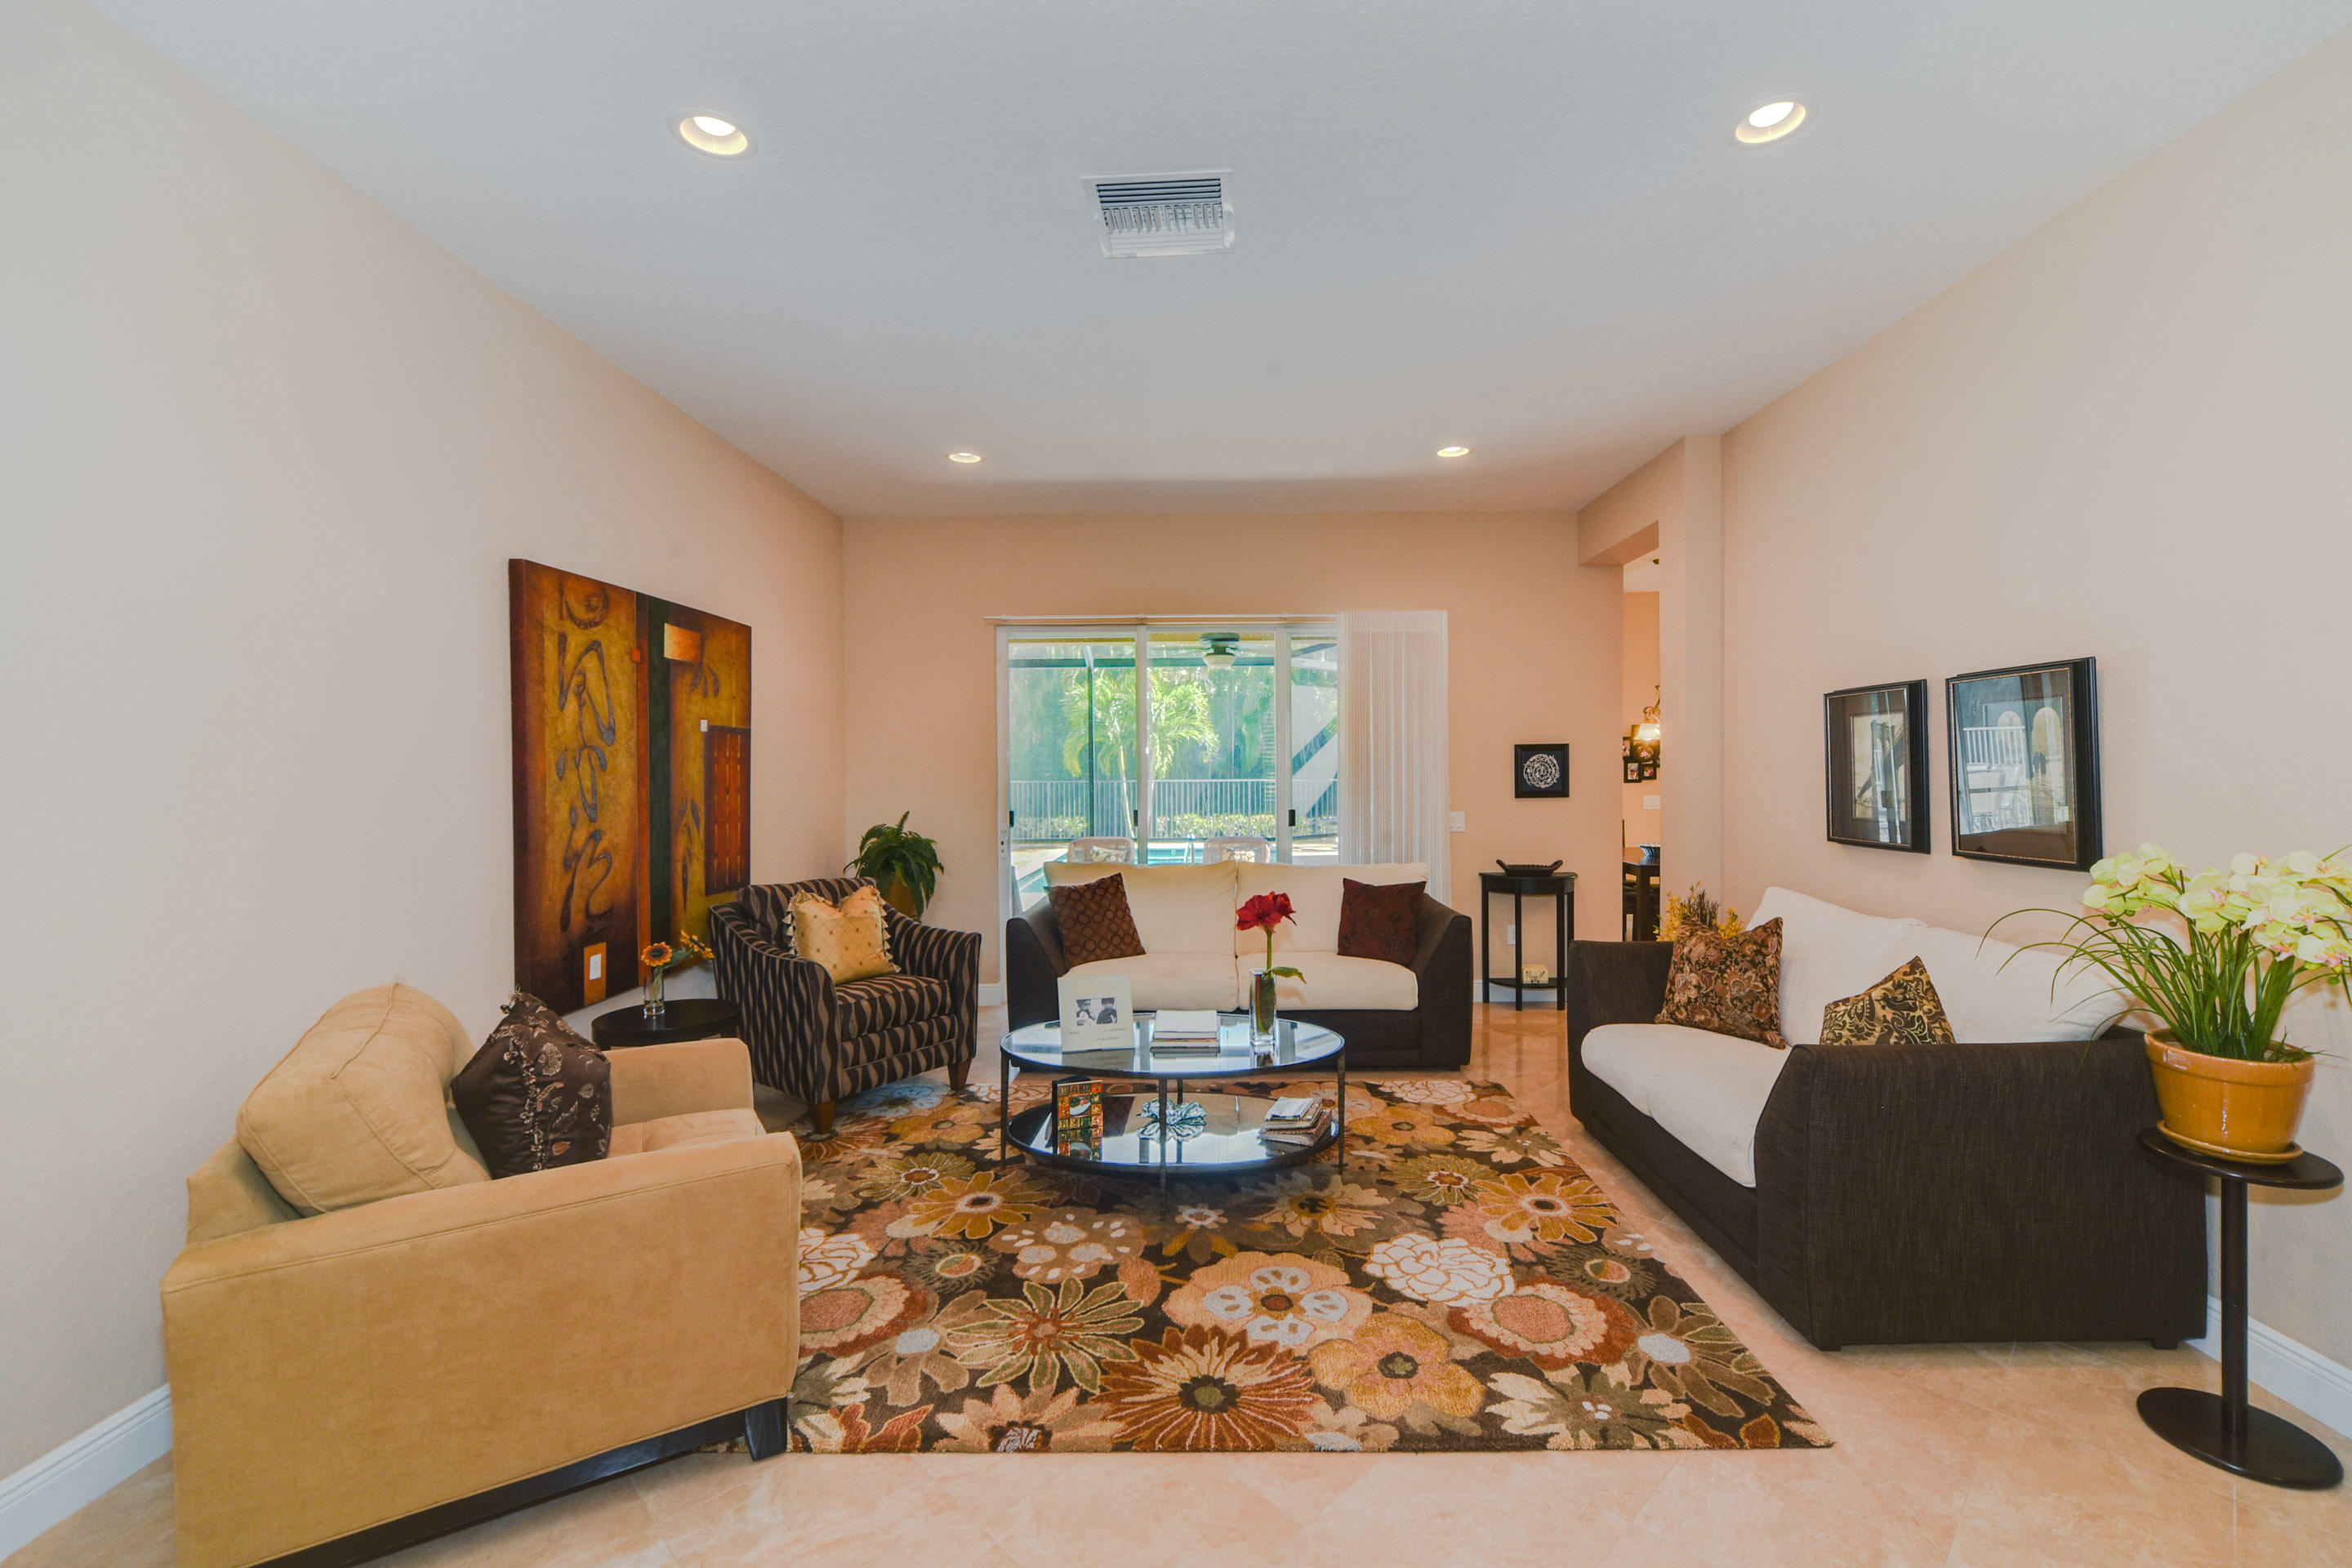 CANYON SPRINGS REALTY